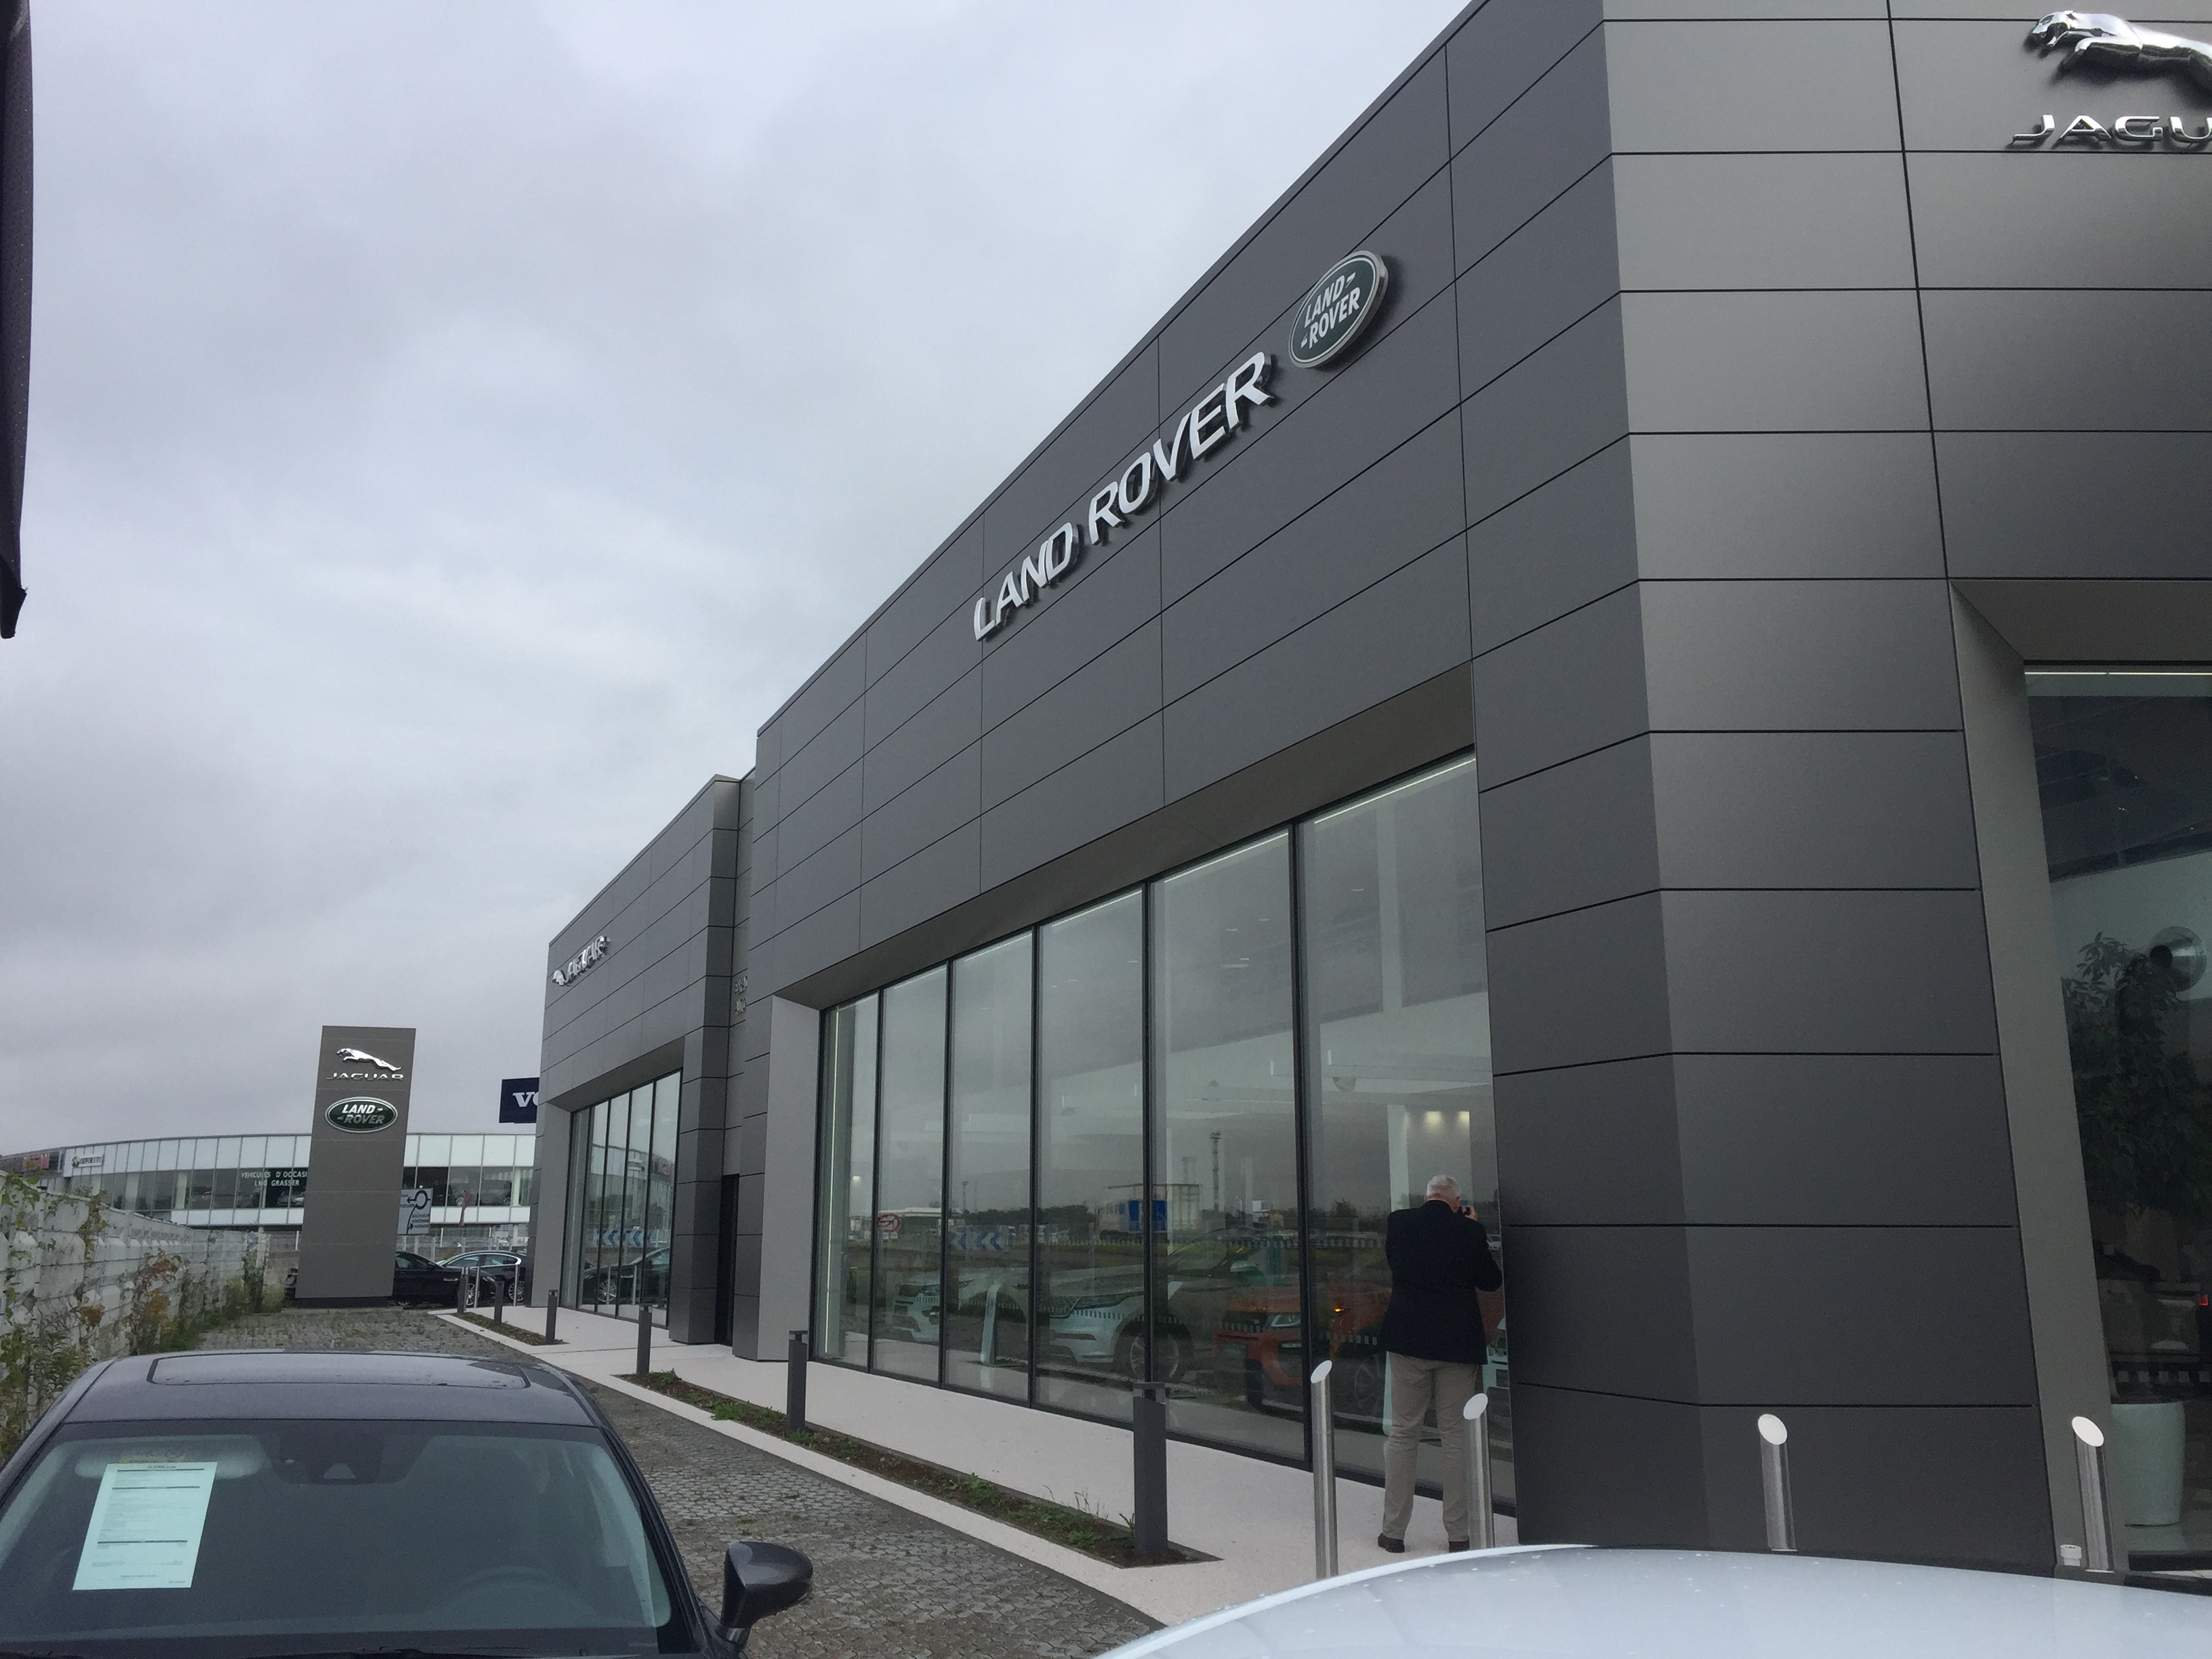 land rover strasbourg in souffelweyersheim 42 rue des tuileries automobiles d occasion in. Black Bedroom Furniture Sets. Home Design Ideas